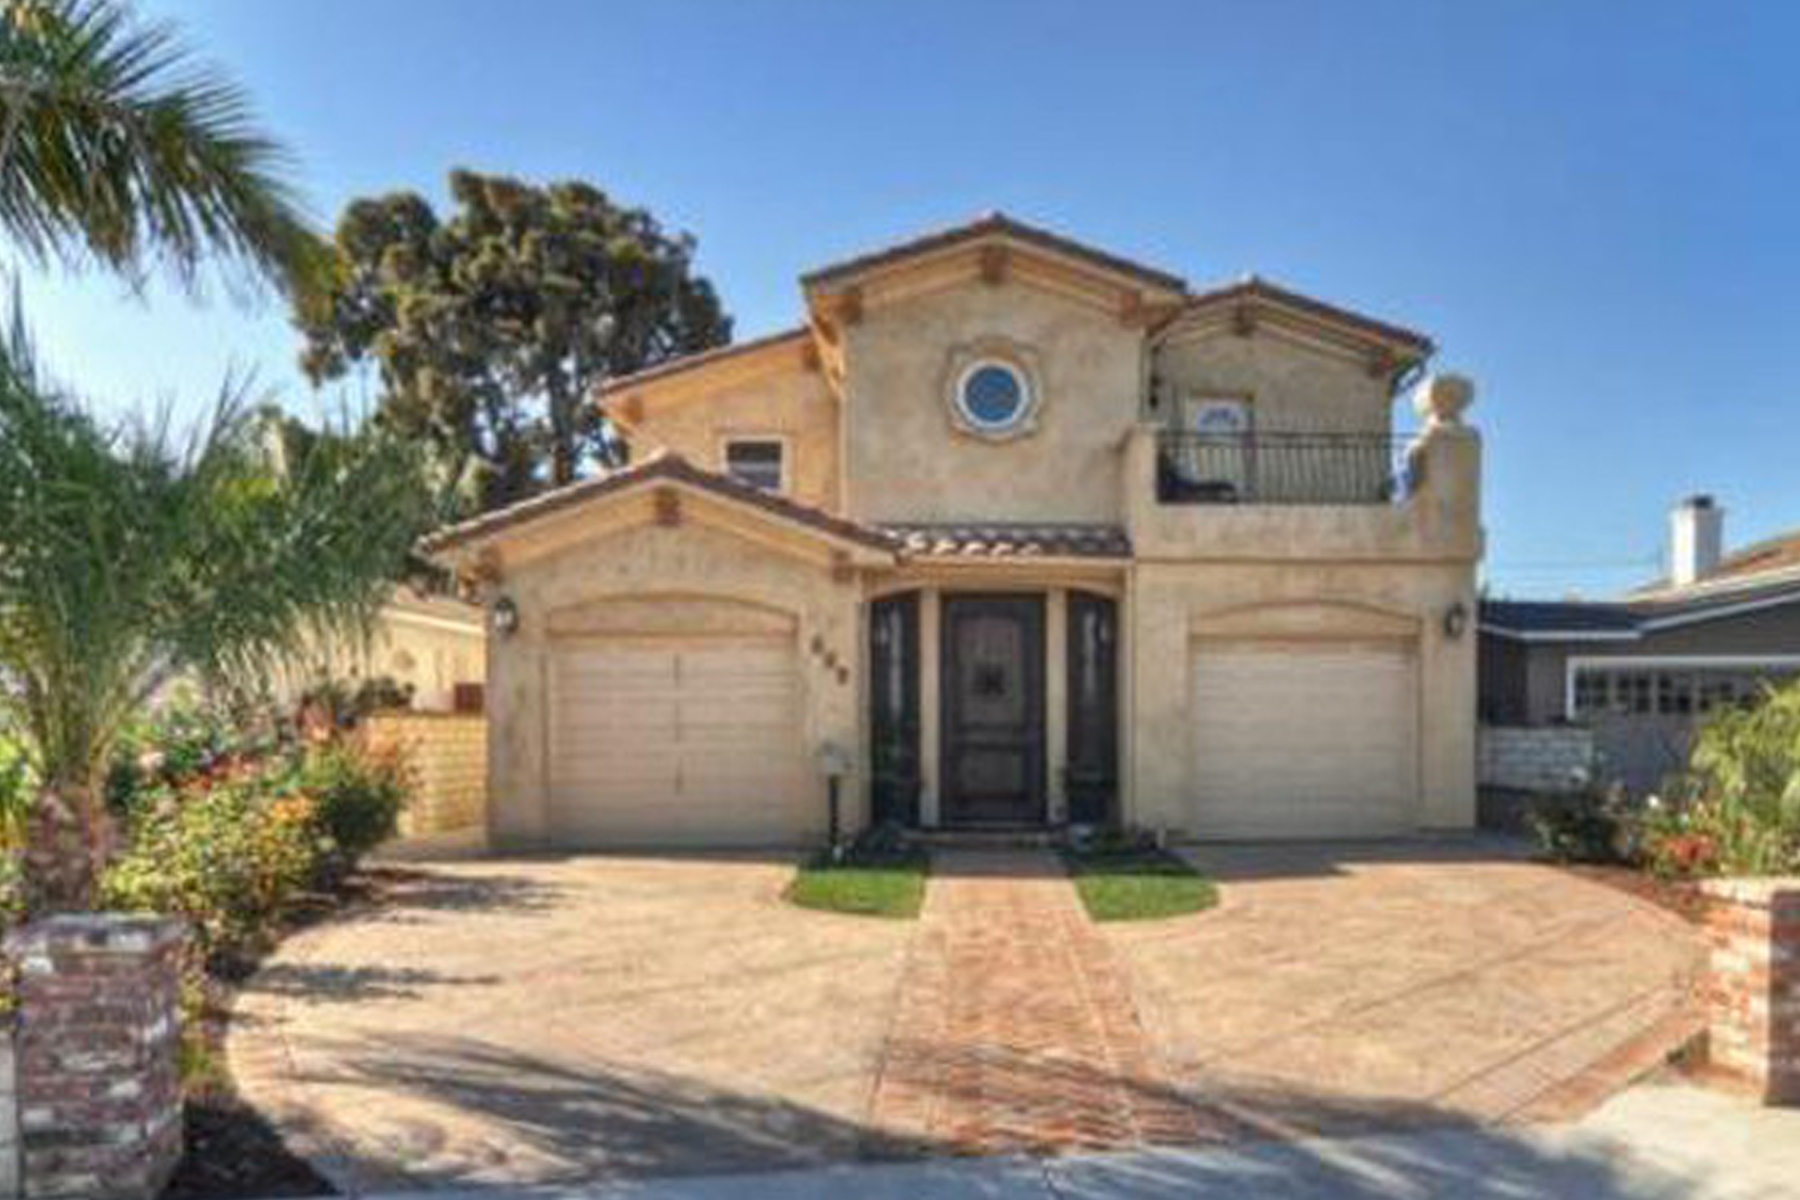 SOLD 5/22/2015    $1,435,000 09 CALLE SERENA, SAN CLEMENTE 92672